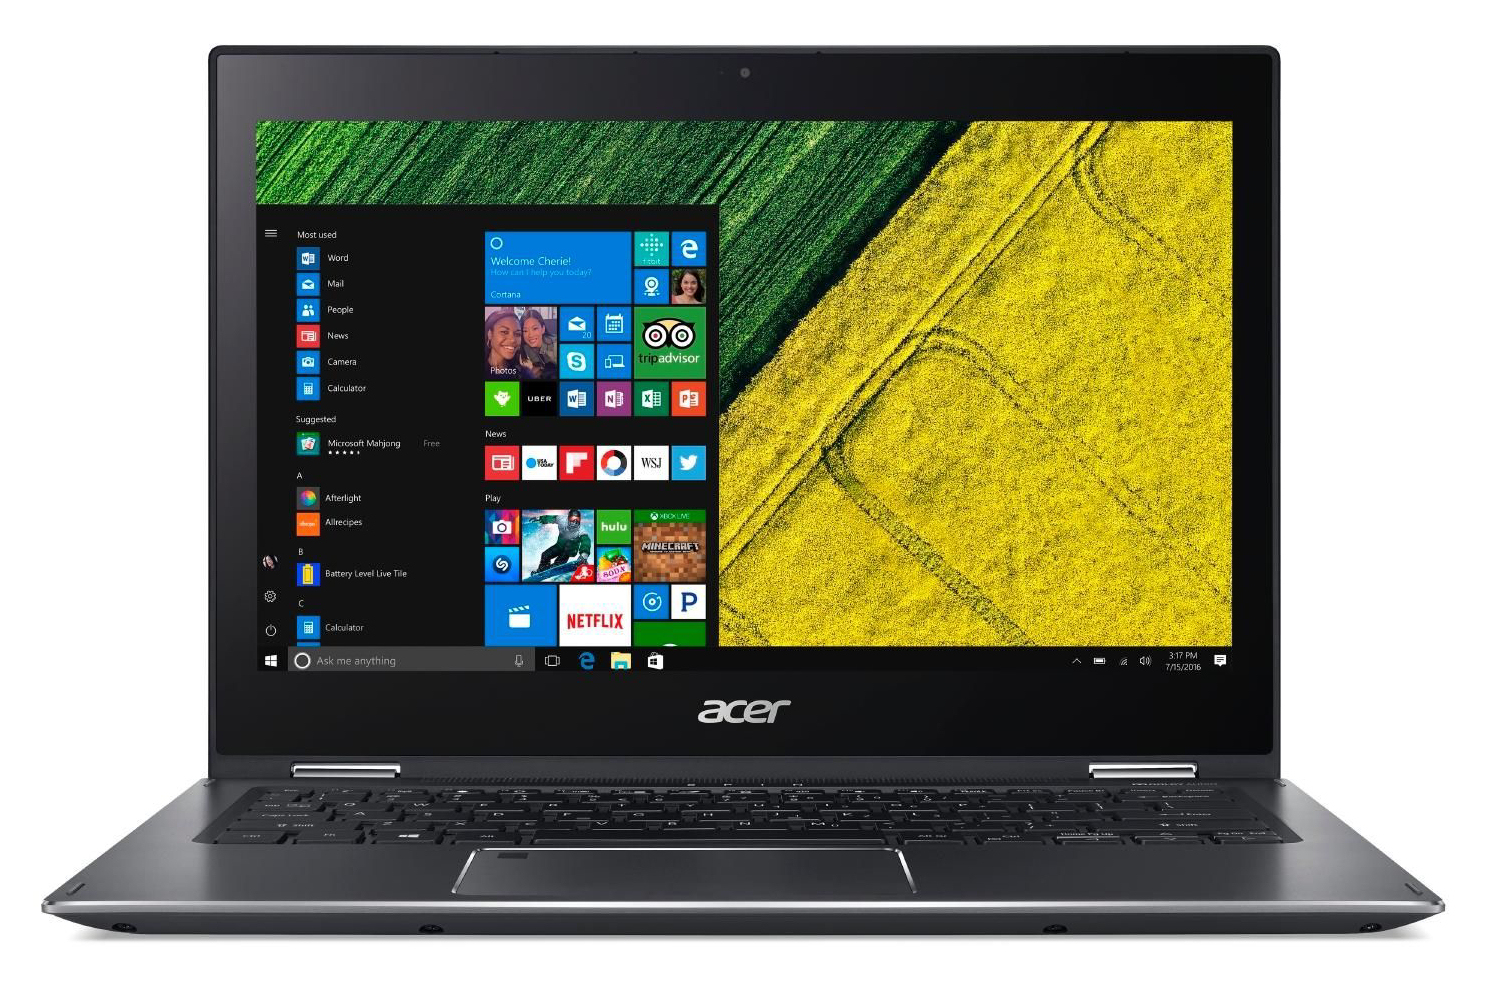 ACER SP513-52NP DRIVERS FOR WINDOWS MAC